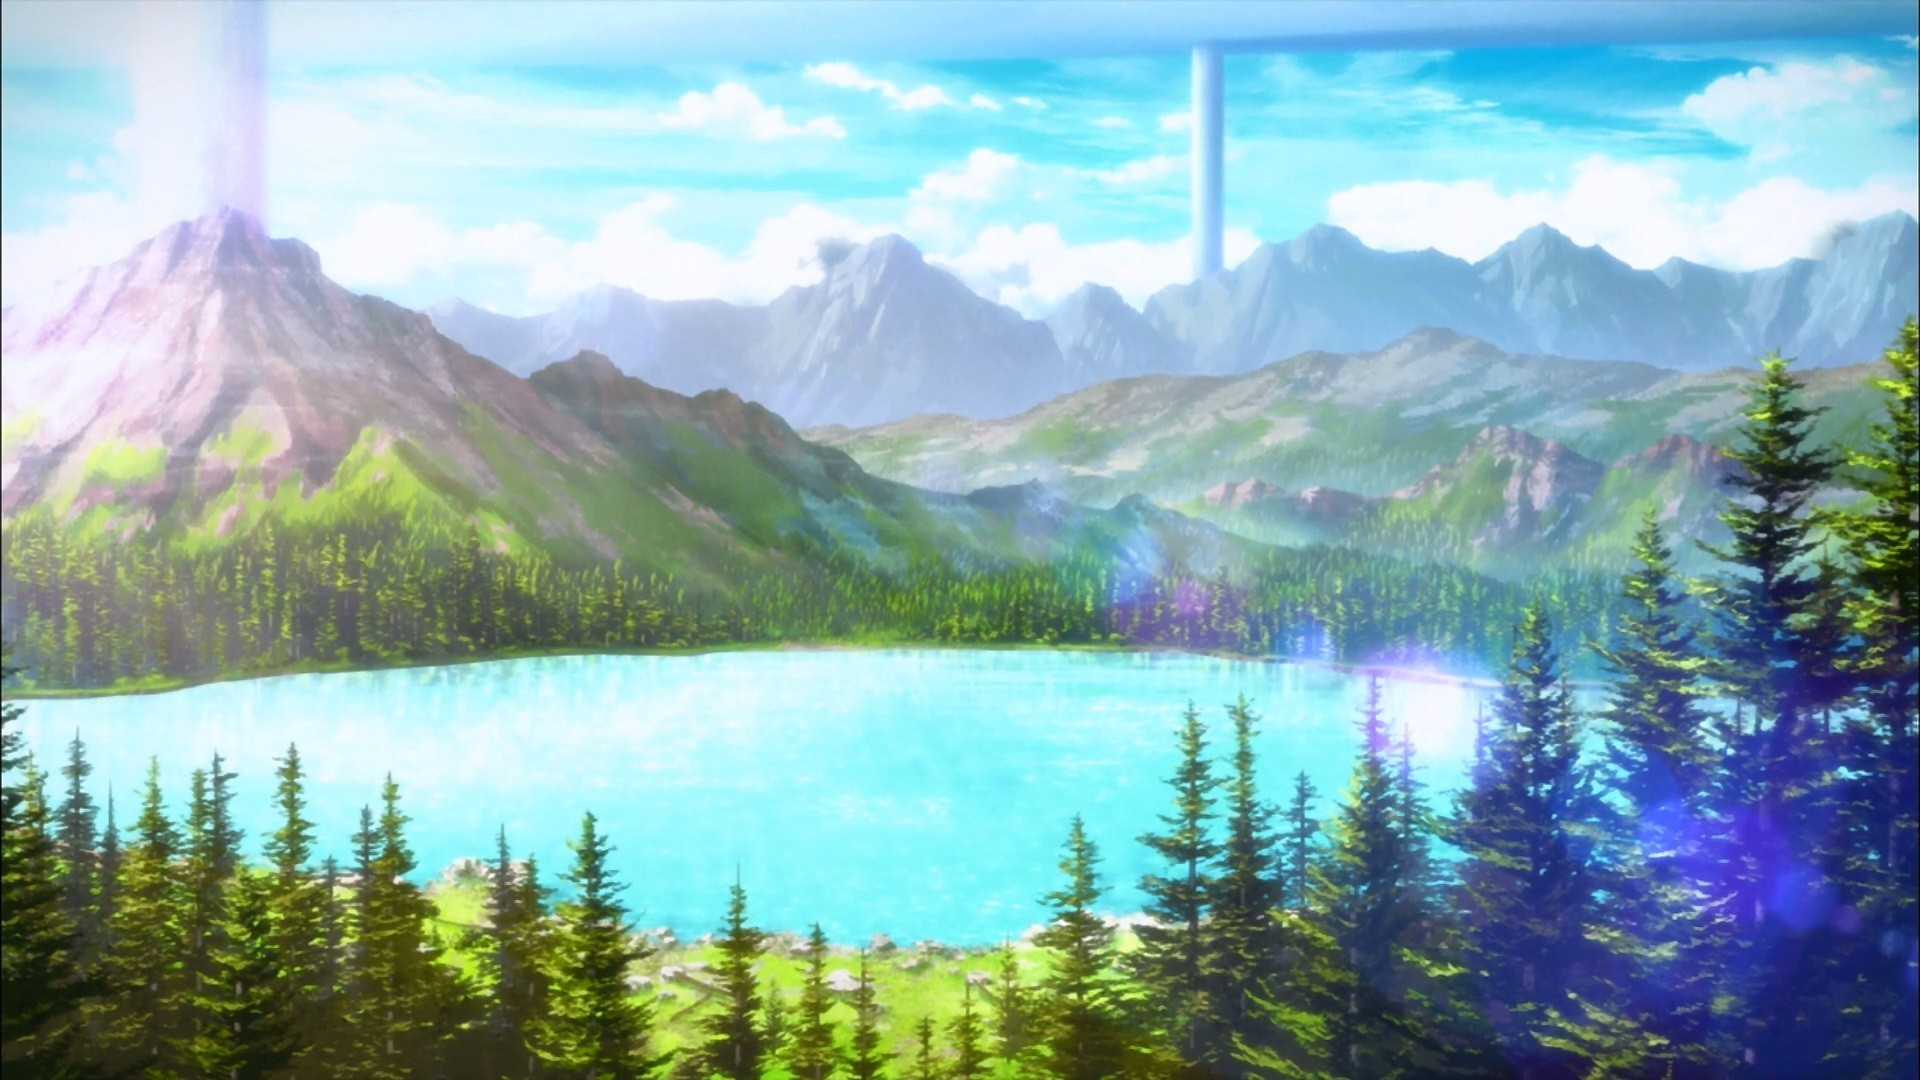 … wallpapers backgrounds; anime landscape sword art online mountains  trees …